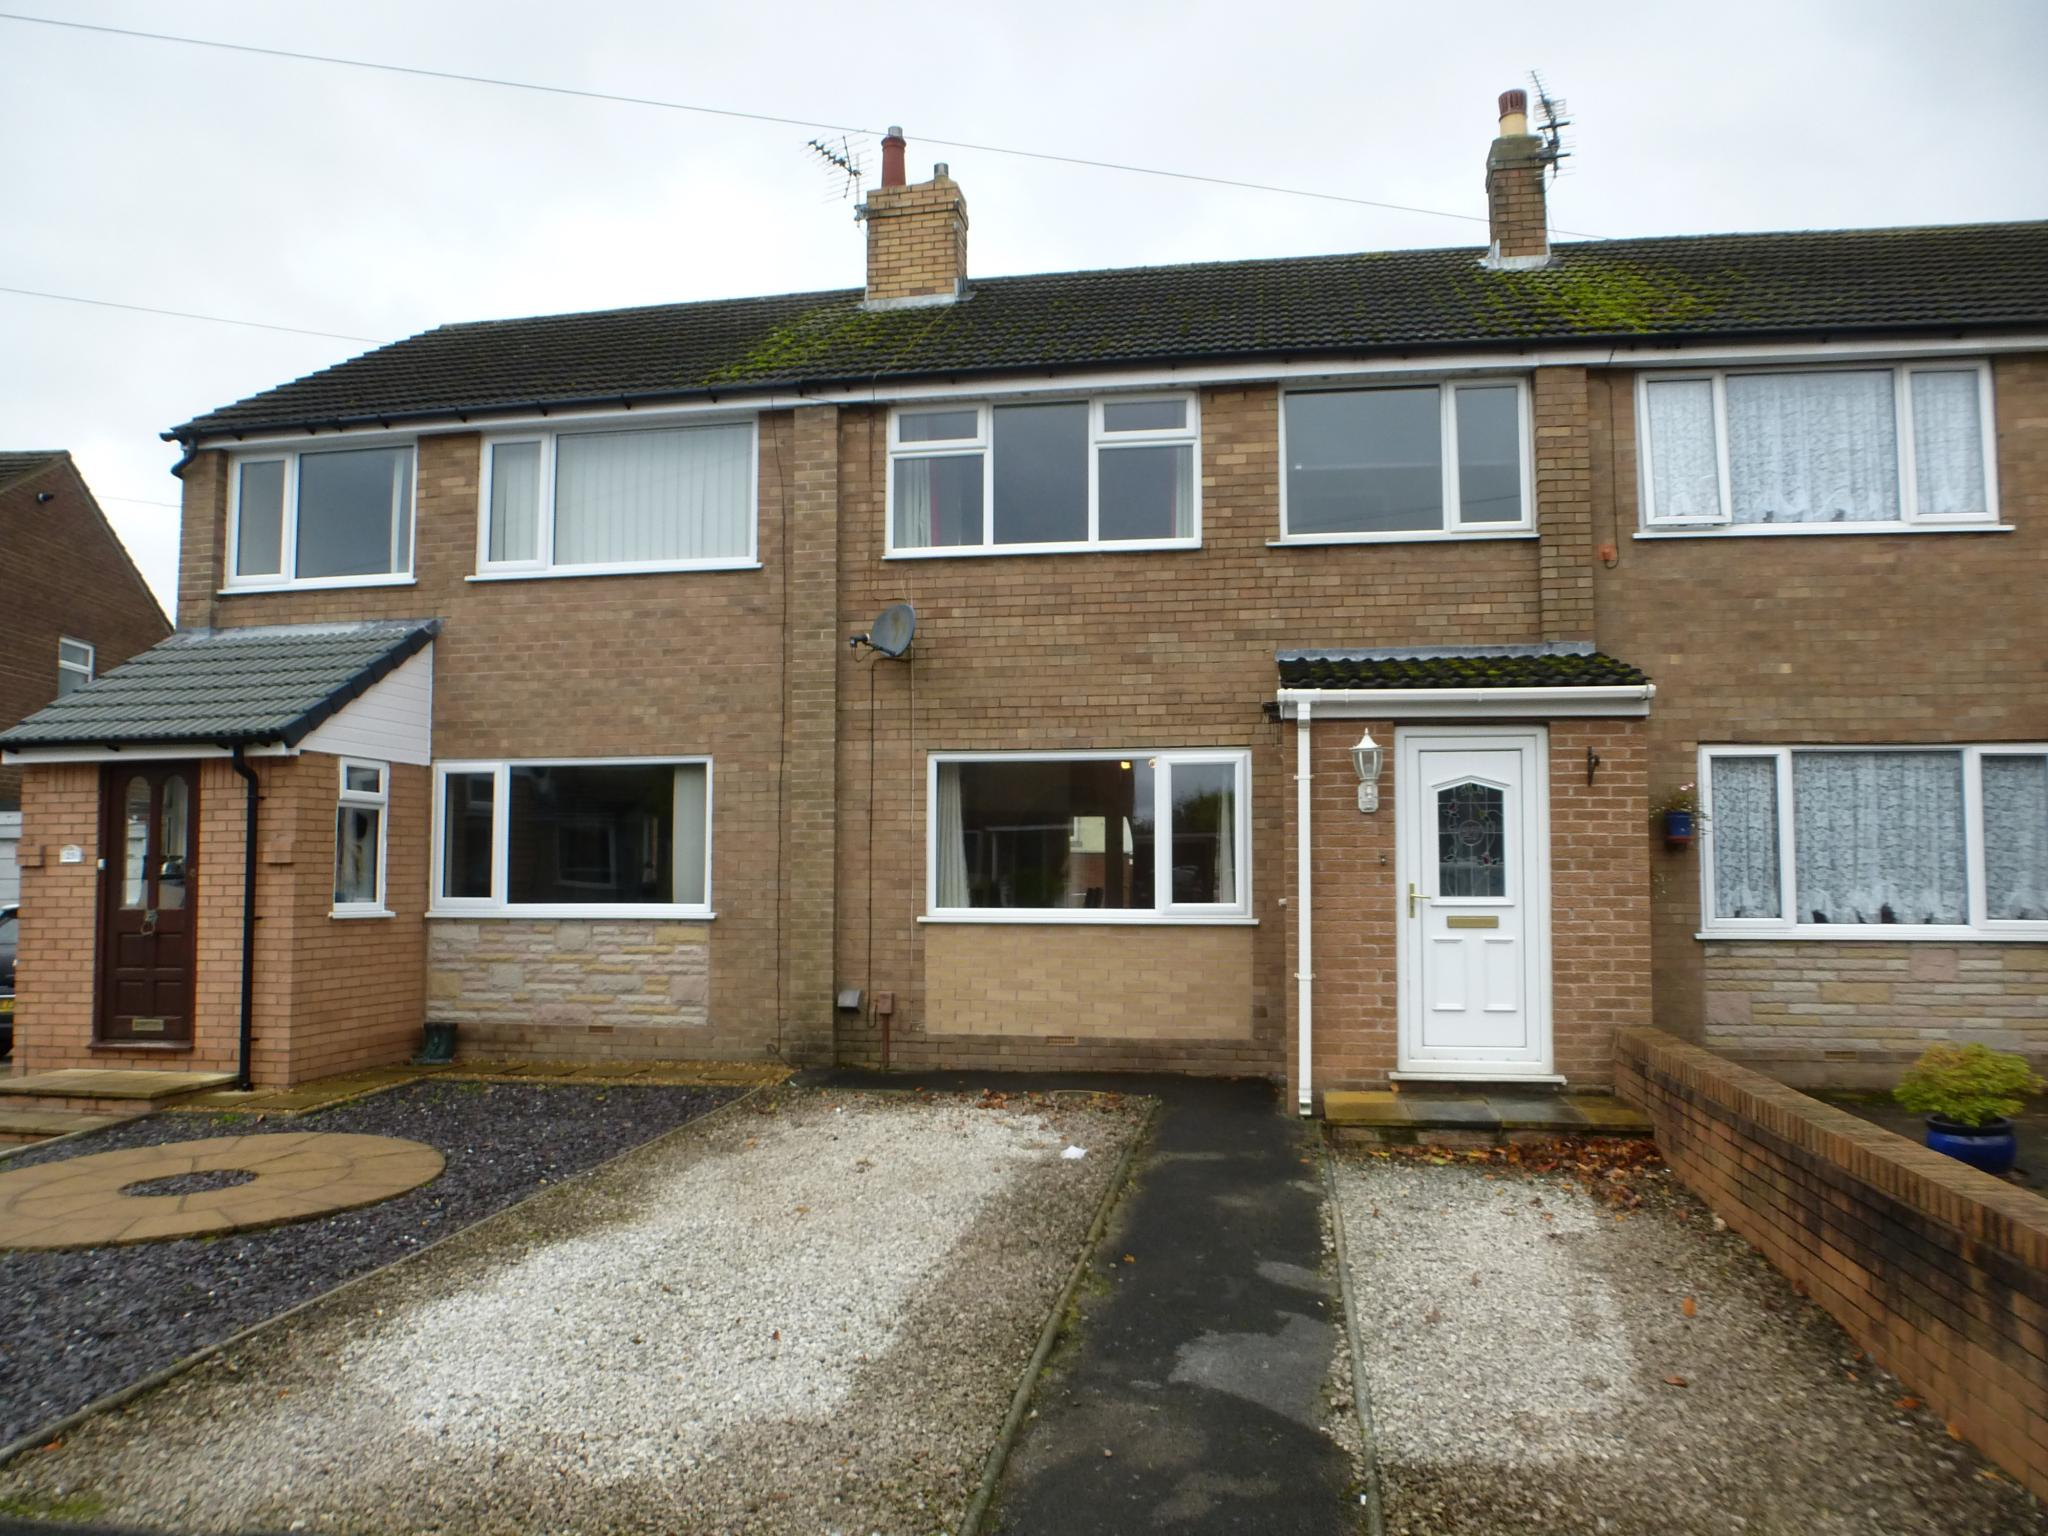 3 Bedroom Mid Terraced House For Sale - Image 0